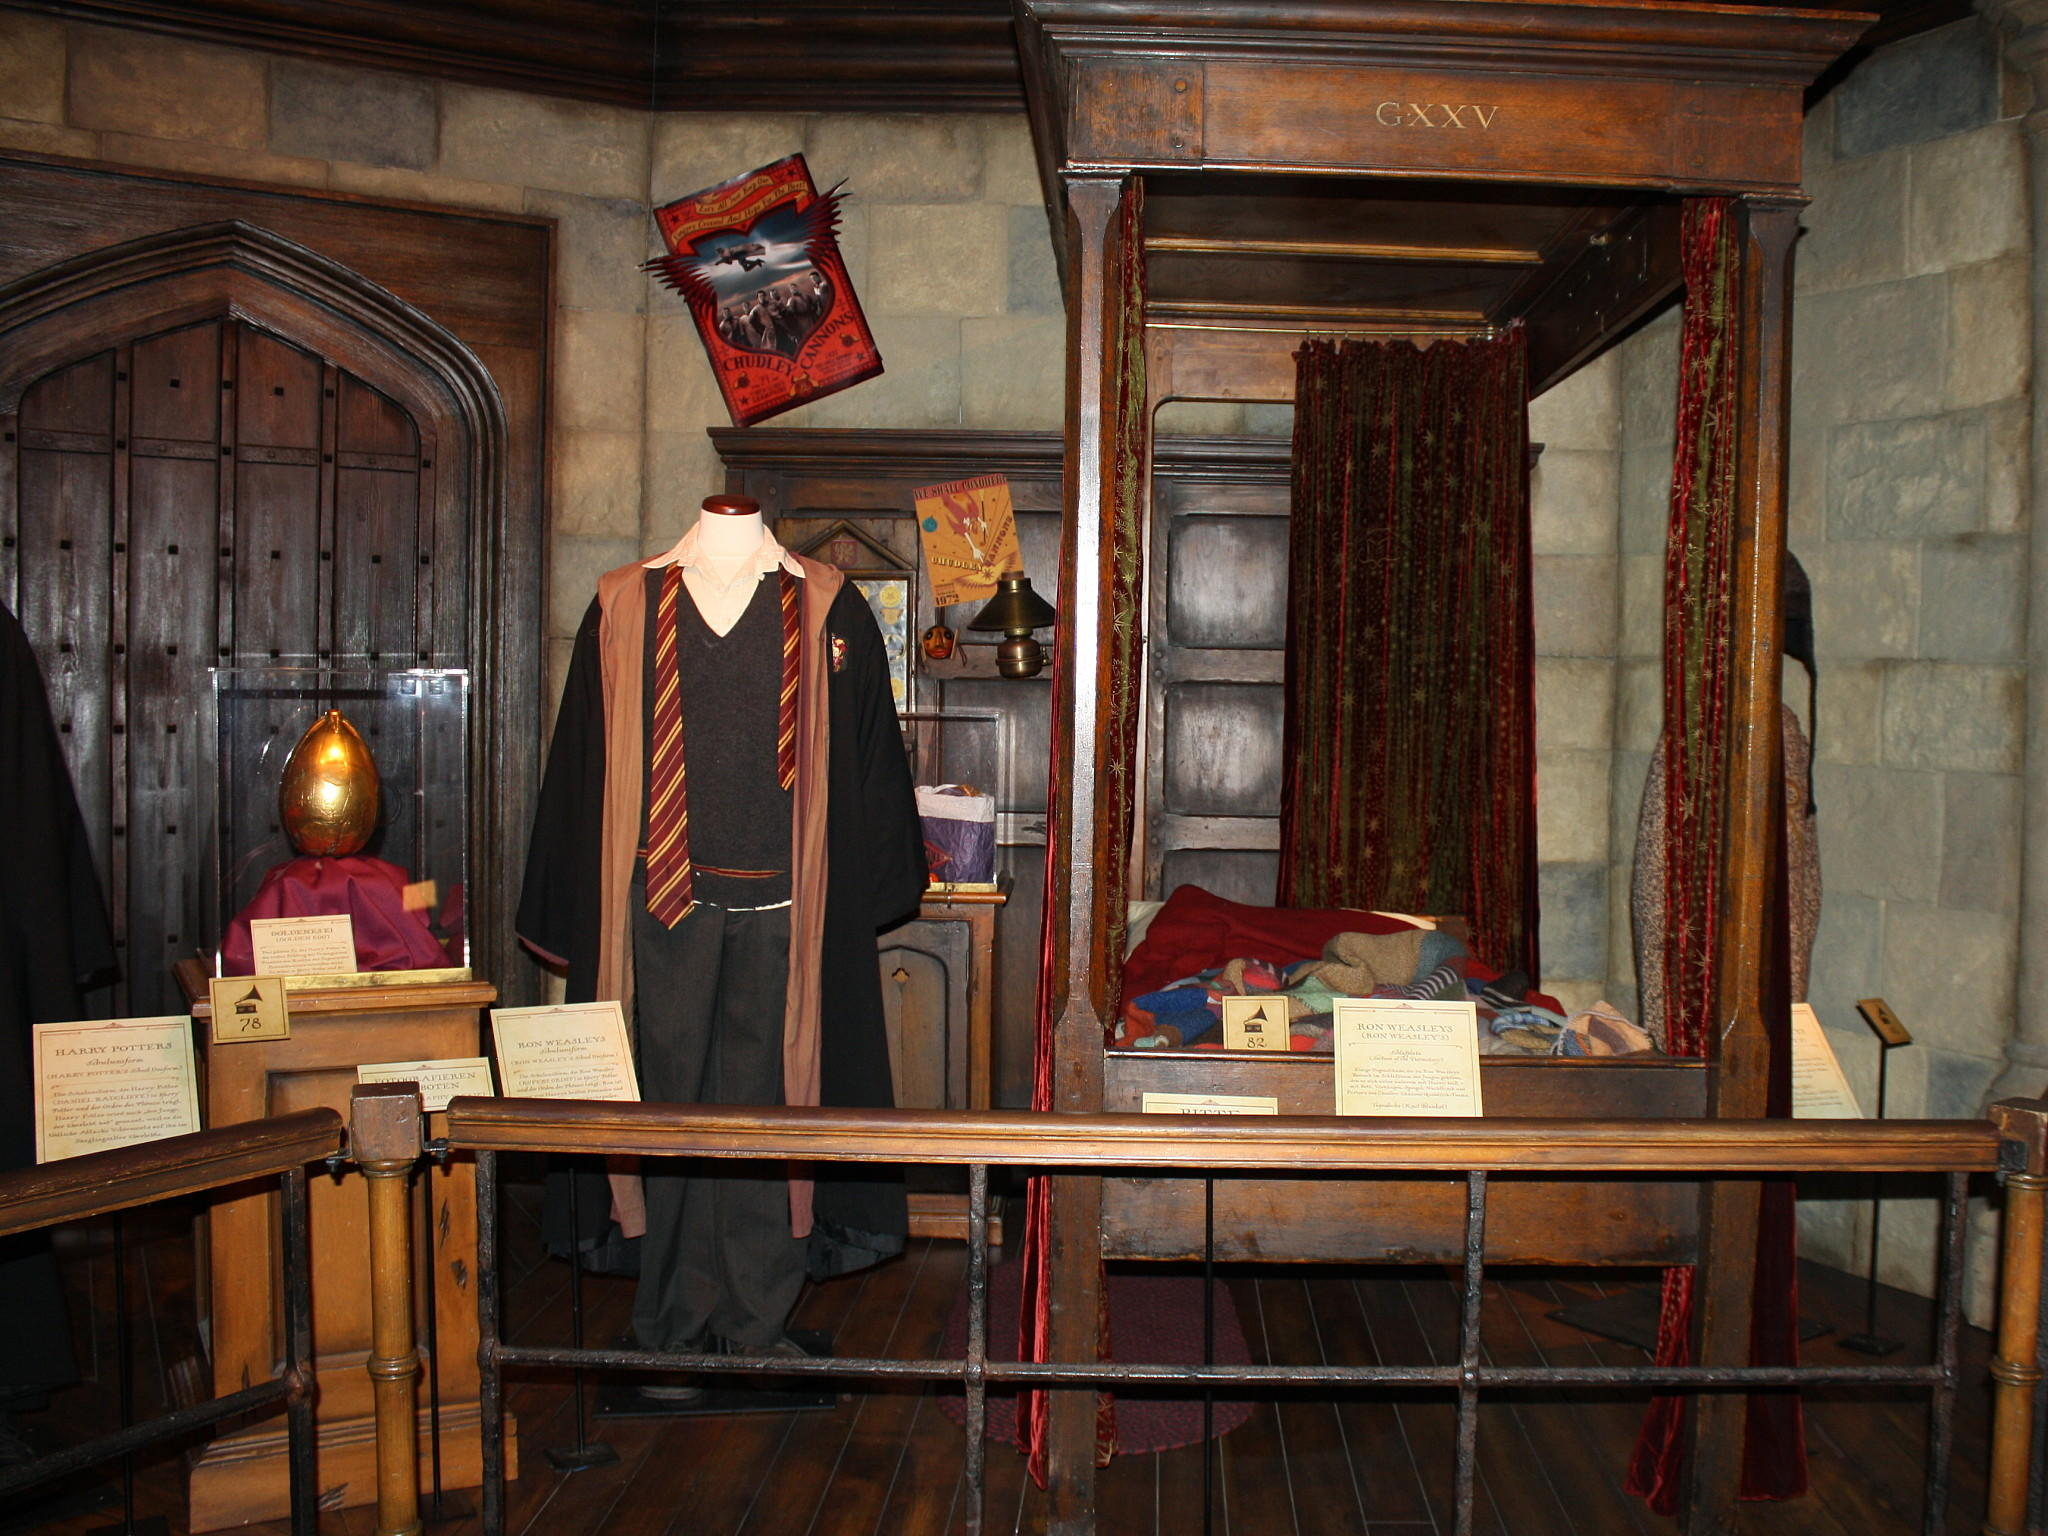 Harry Potter - The Exhibition: Auf den Spuren des Zaubererlehrlings